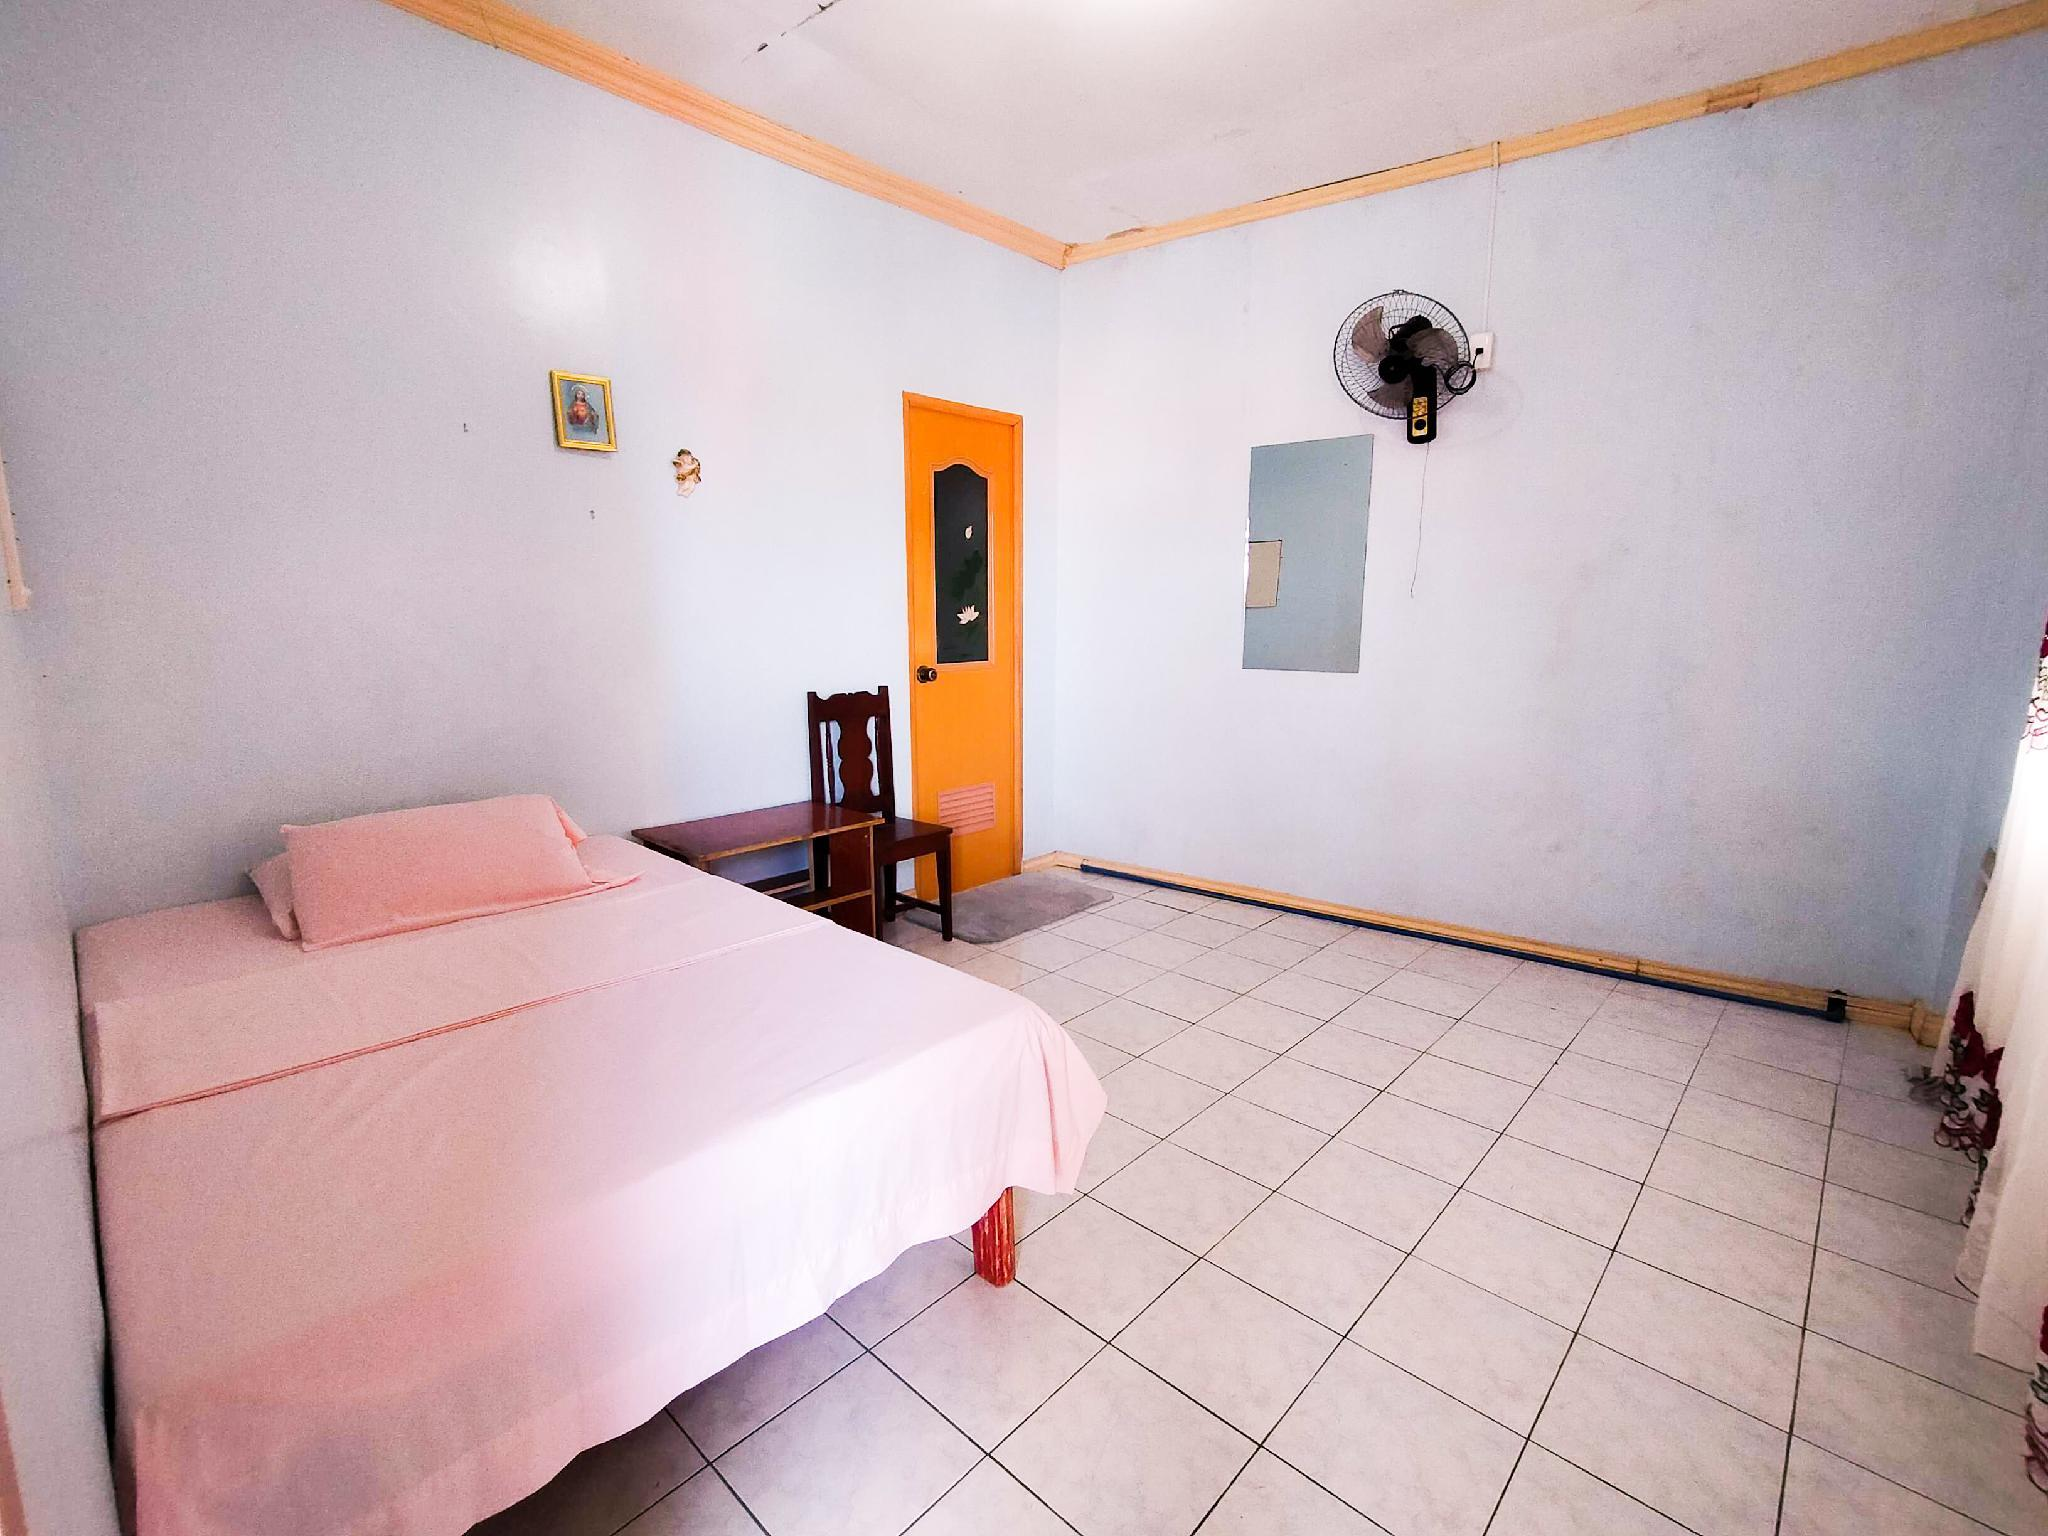 ROOM4 12 HOURS ROOM STAY IN KALIBO